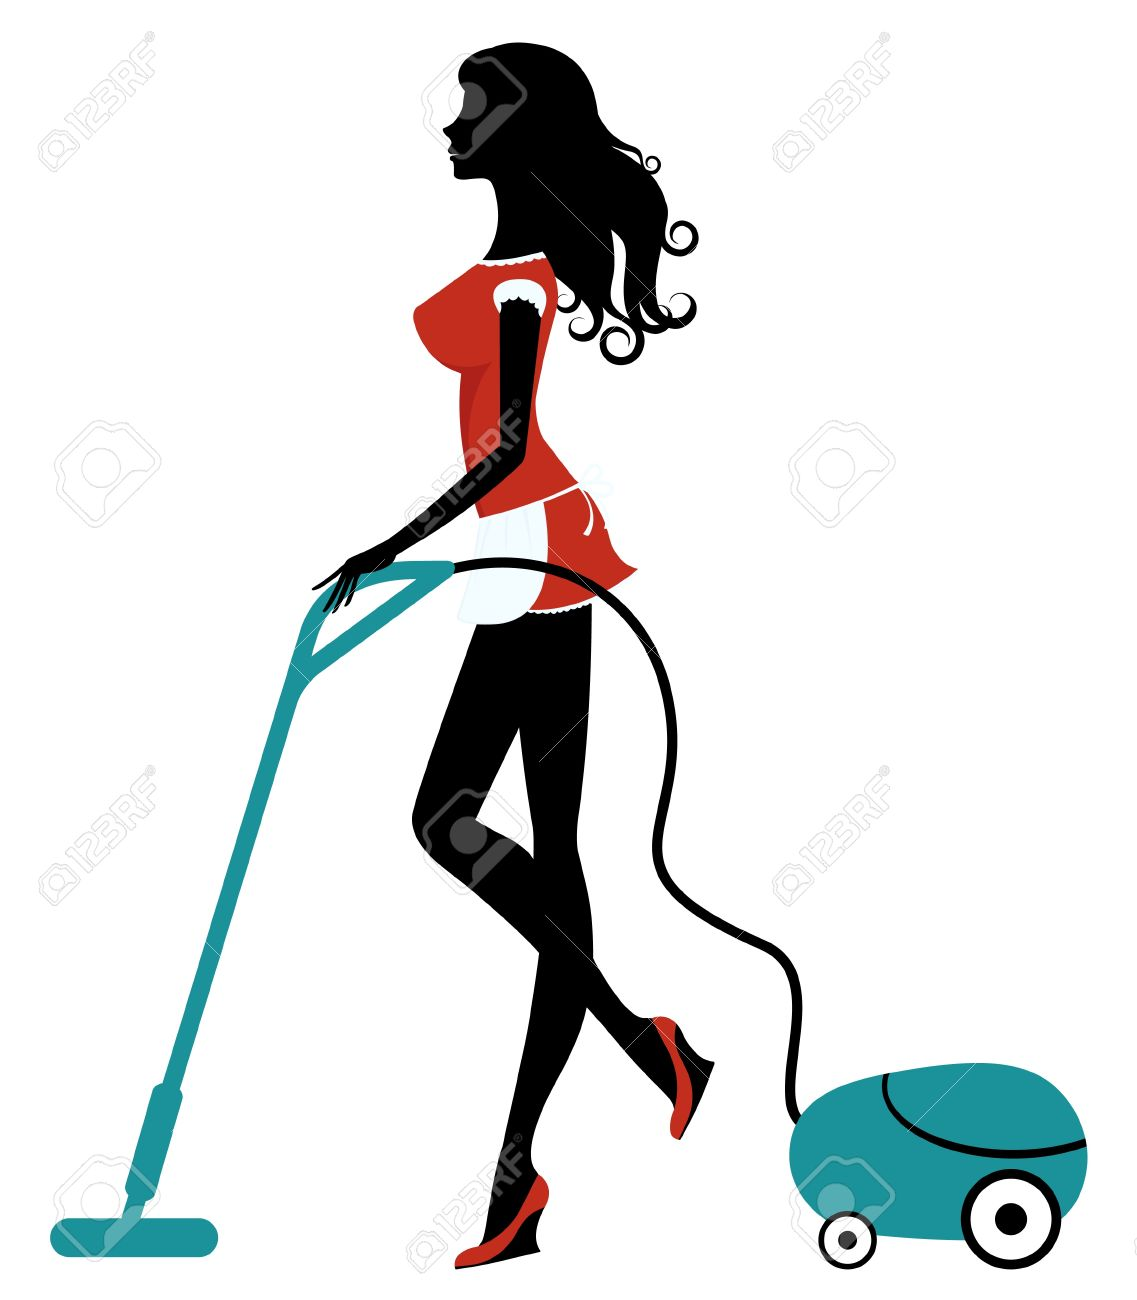 Vacuum cleaner clipart vacuum cleaner clip art - Vacuum Cleaner Girl With Vacuum Cleaner